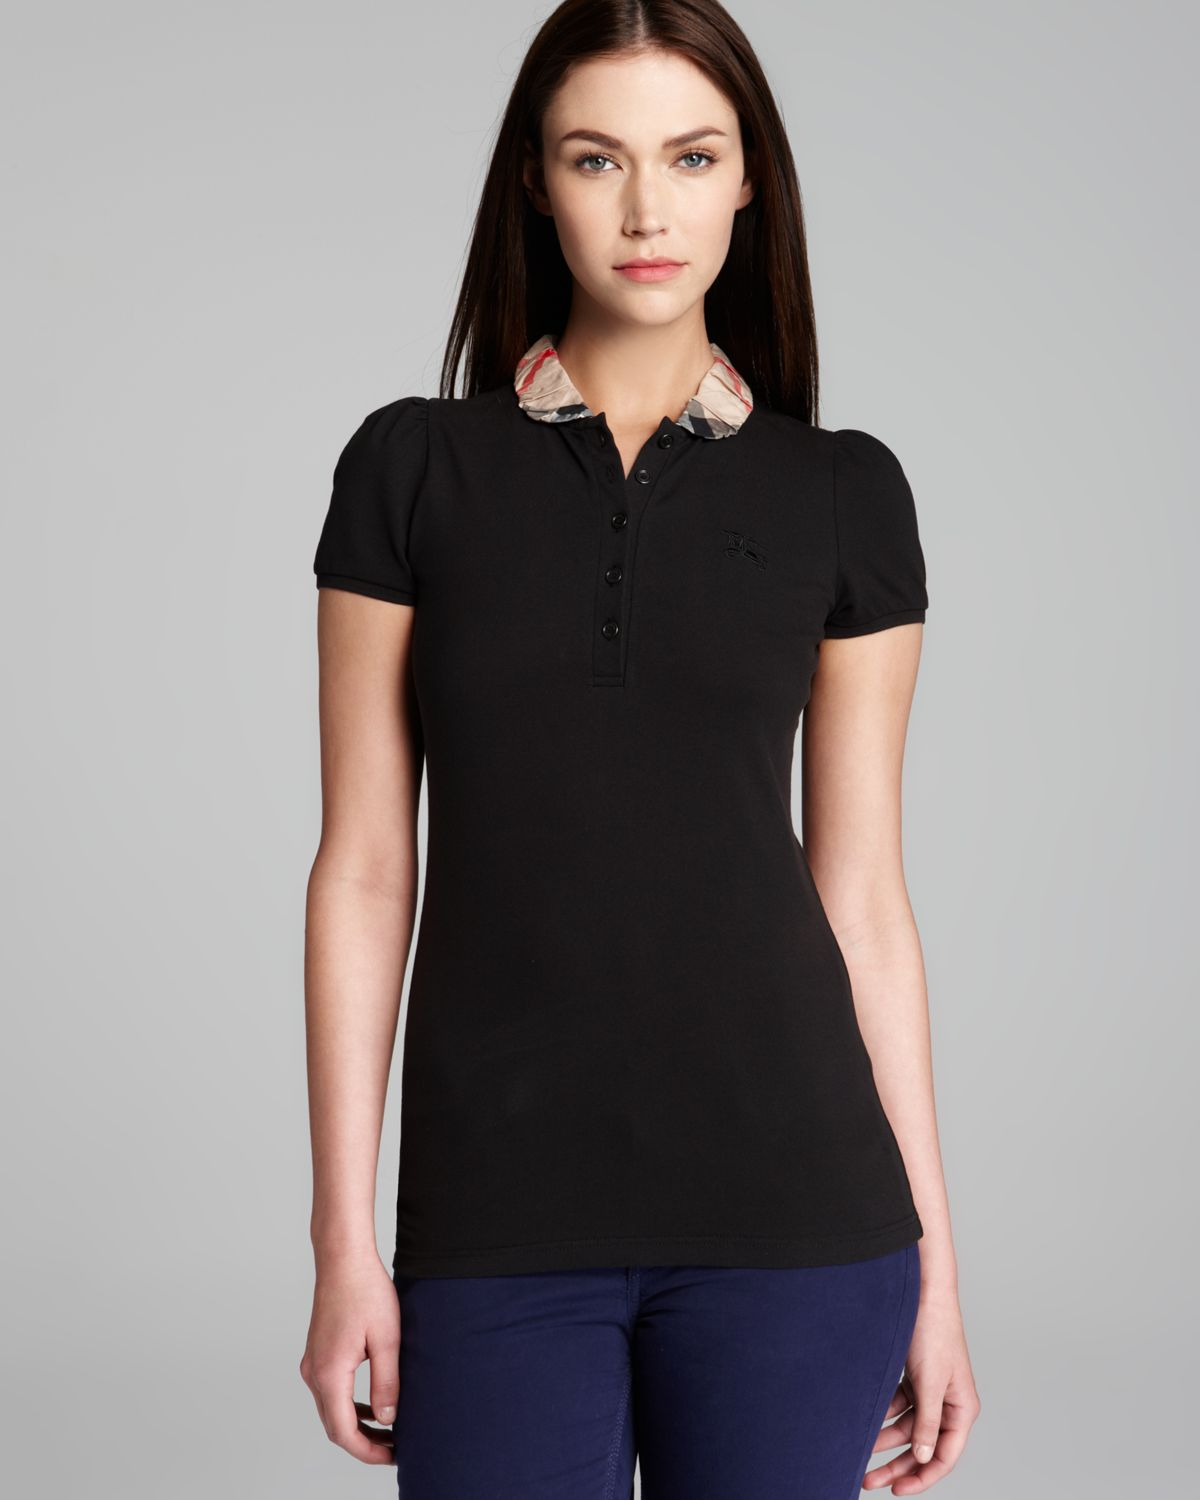 Lyst burberry polo shirt with check collar in black for Burberry shirt size chart